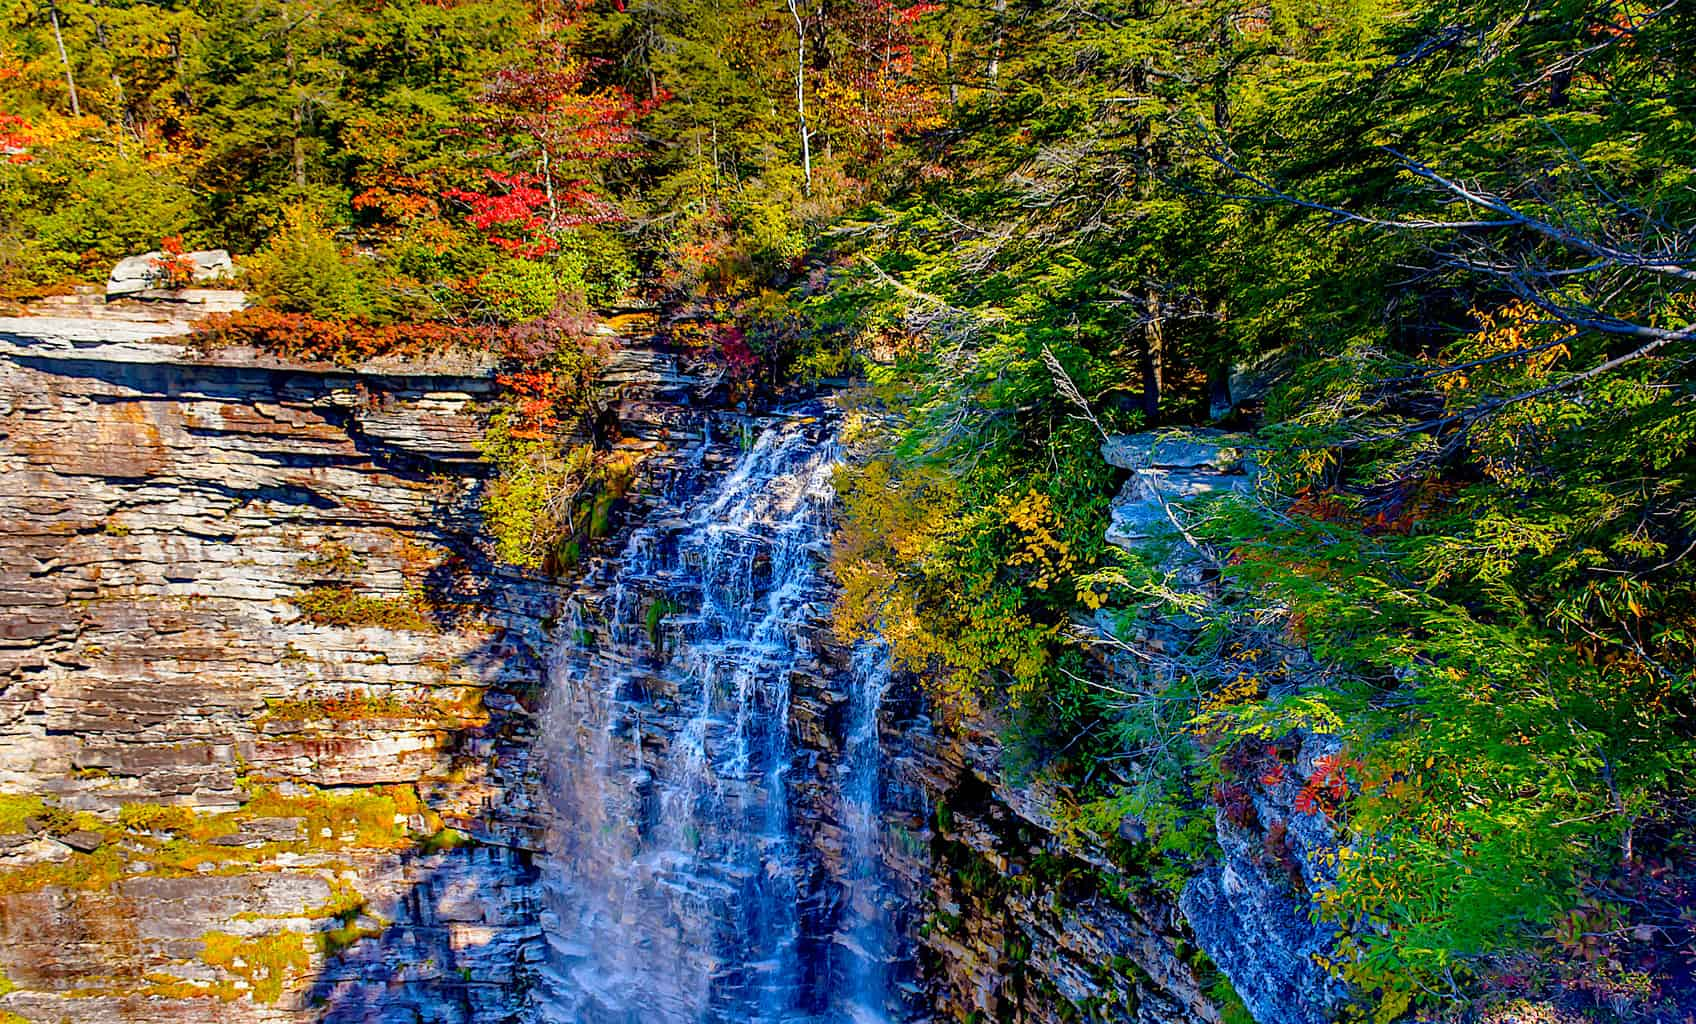 A view of Verkeerderkill Falls in the fall. Image sourced from Jim Hall on Flickr.com.